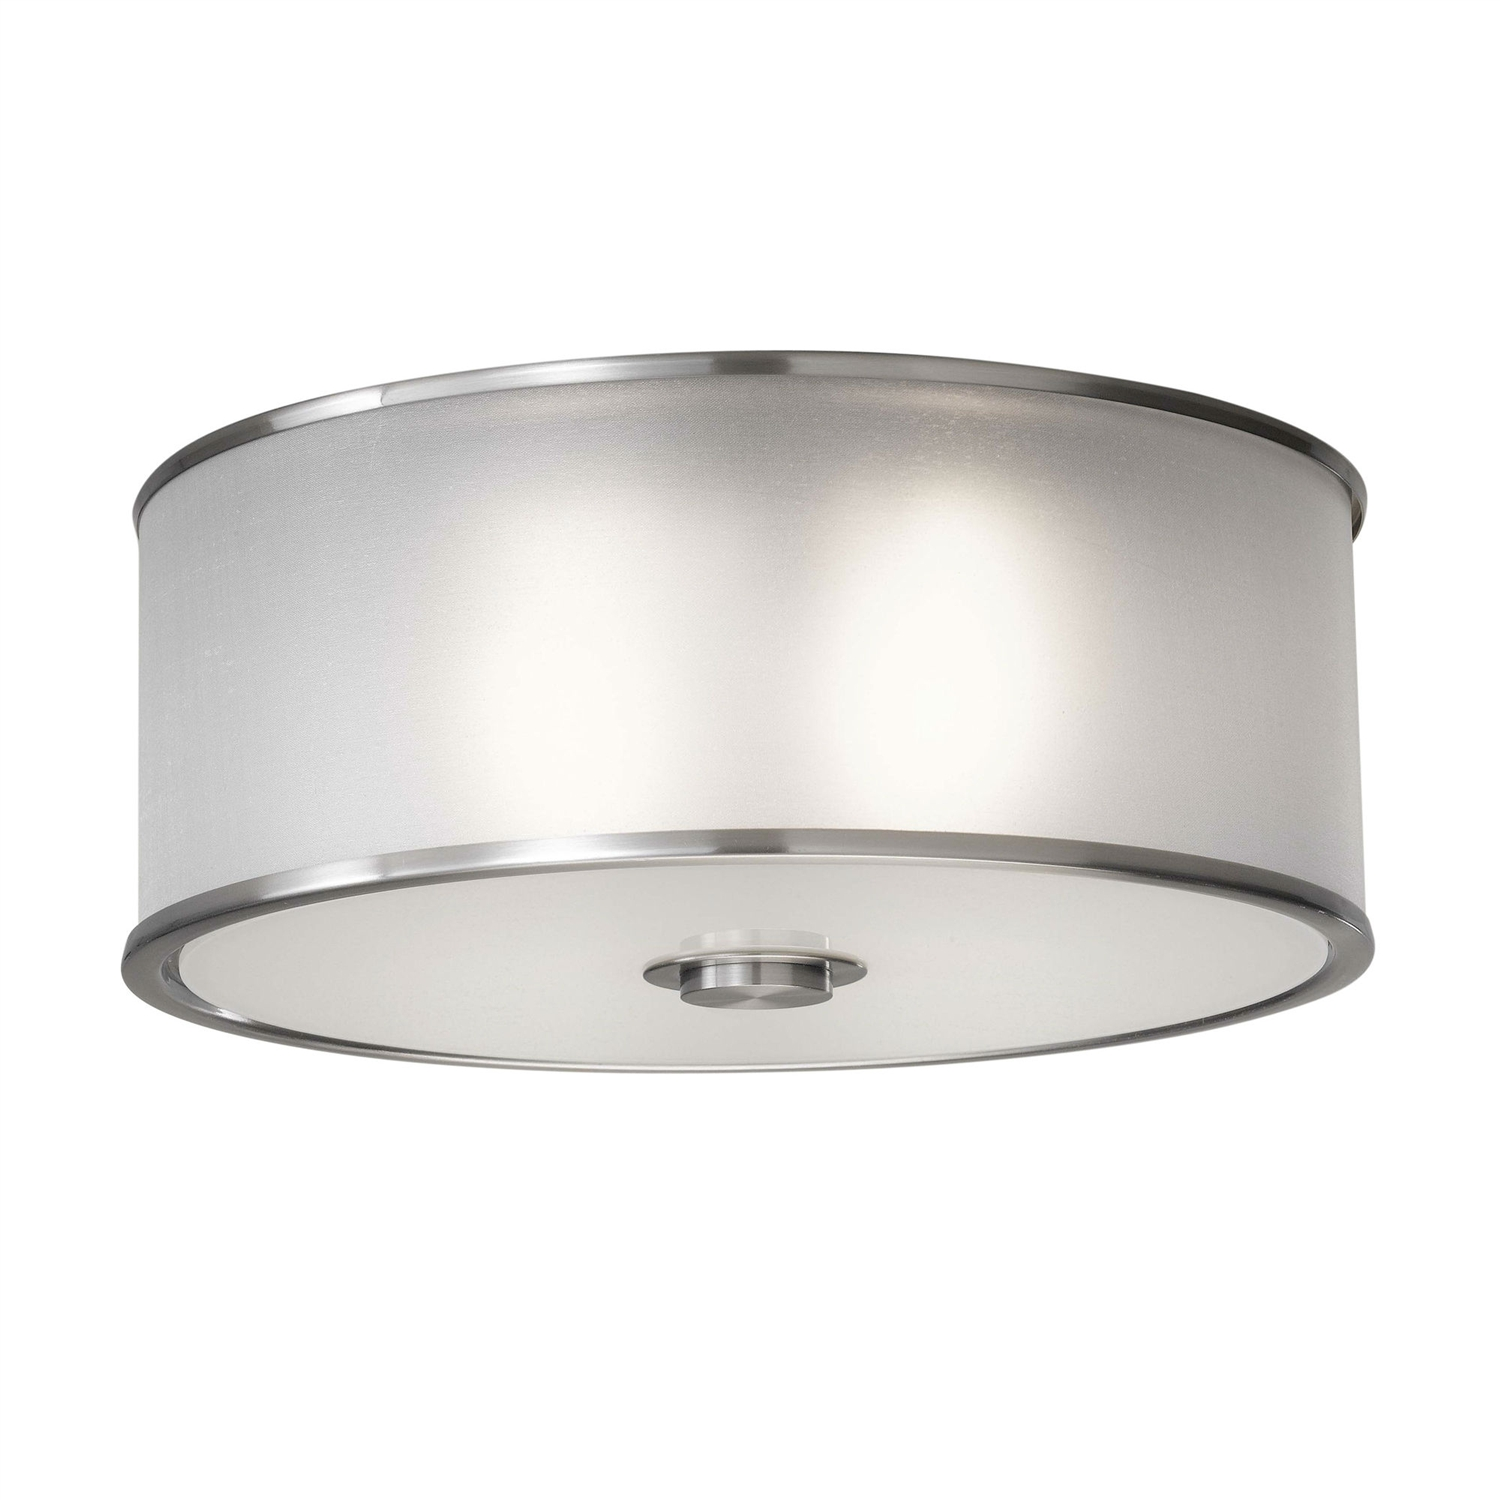 This Modern Flush Mount Round Brushed Steel Ceiling Light would be a great addition to your home. It has a silver organza hardback shade and a steel construction. Accommodates 2x60W medium A19 bulbs (not included); Voltage: 120V; Product Type: Flush mount. Shade Material: Fabric; Shade Color: 1: Brown; Shade Color: 2: Silver; Shade Shape: Drum/Cylinder. Room Use: Kitchen; Bathroom; Bedroom; Entry/Foyer; Living room; Office. Water Resistant Details: UL listed for damp locations; Number of Lights: 2; Bulb Type: Incandescent. Bulb Shape: A19; Bulb Included: No; Wattage per Bulb: 60; Voltage: 120; Style: Modern; Light Direction: Downlight; Ambient; Country of Manufacture: China; Product Warranty: 1 Year. Damp, Dry or Wet Location Listed: Damp; UL Listed: Yes; cUL Listed: Yes; Energy Star Compliant: No.